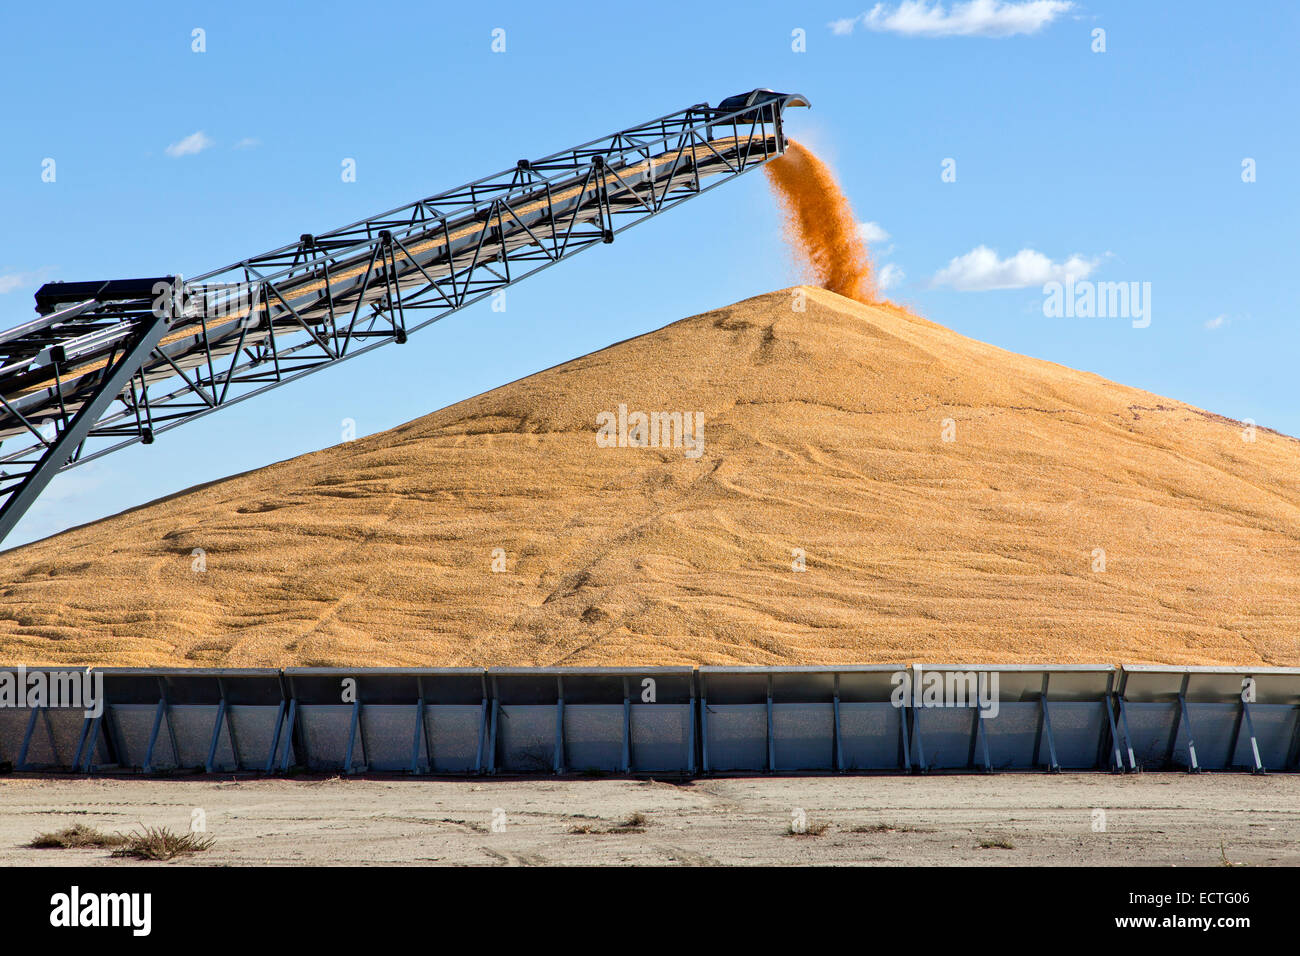 Transport conveyor deposting shelled corn into storage bunker. - Stock Image